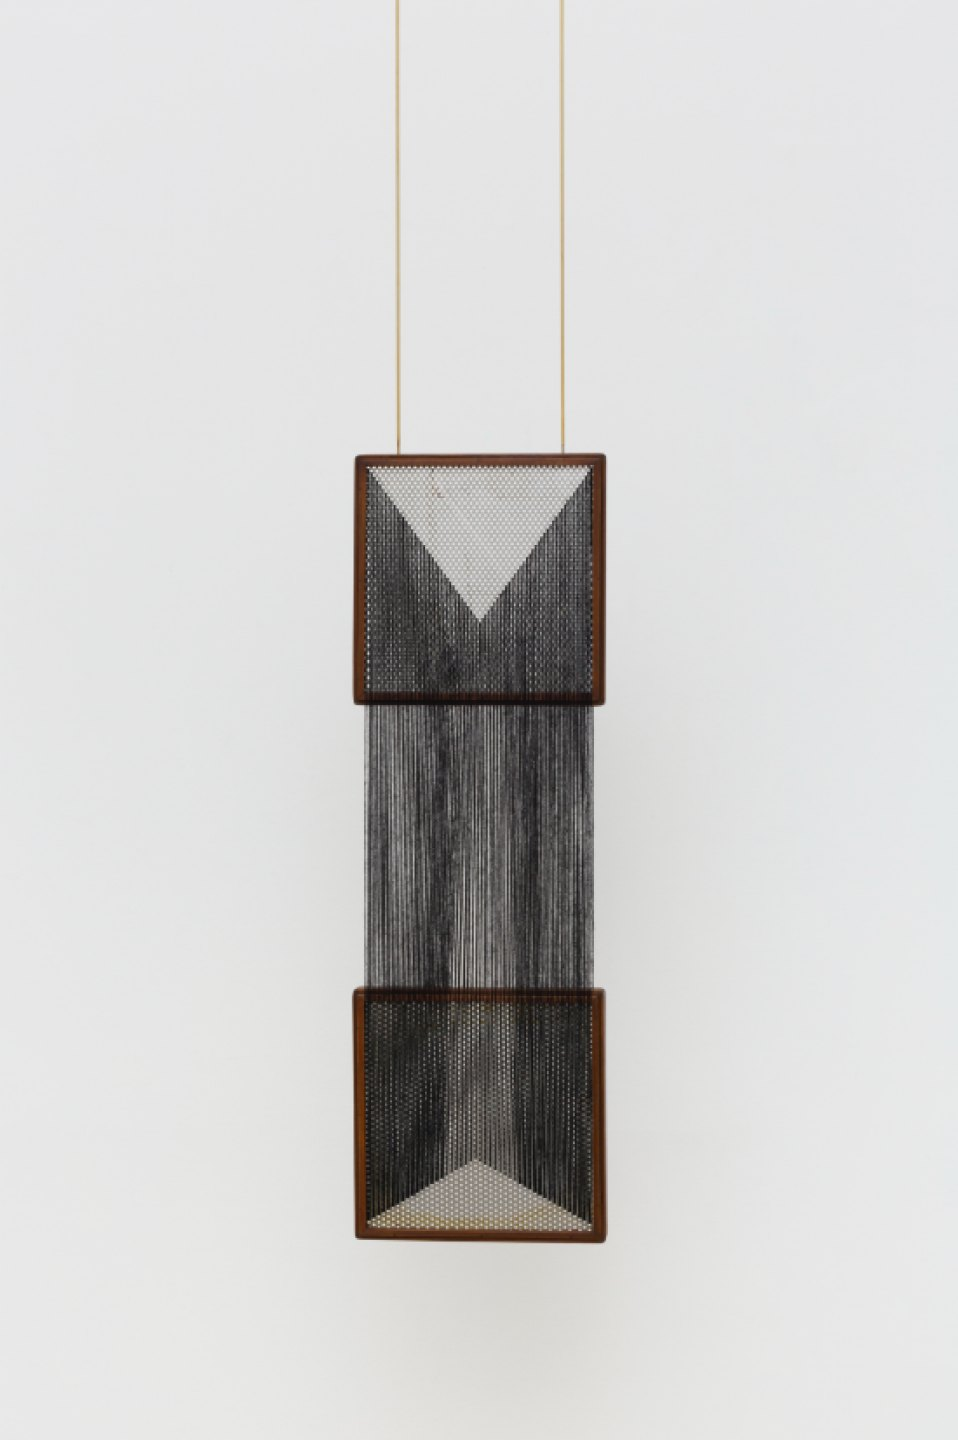 Paloma Bosquê, <em>Das interações provisórias</em>, 2017, coffee sorting sieve, woolen yarn and brass rods, 94 × 30 × 4,5 cm - Mendes Wood DM